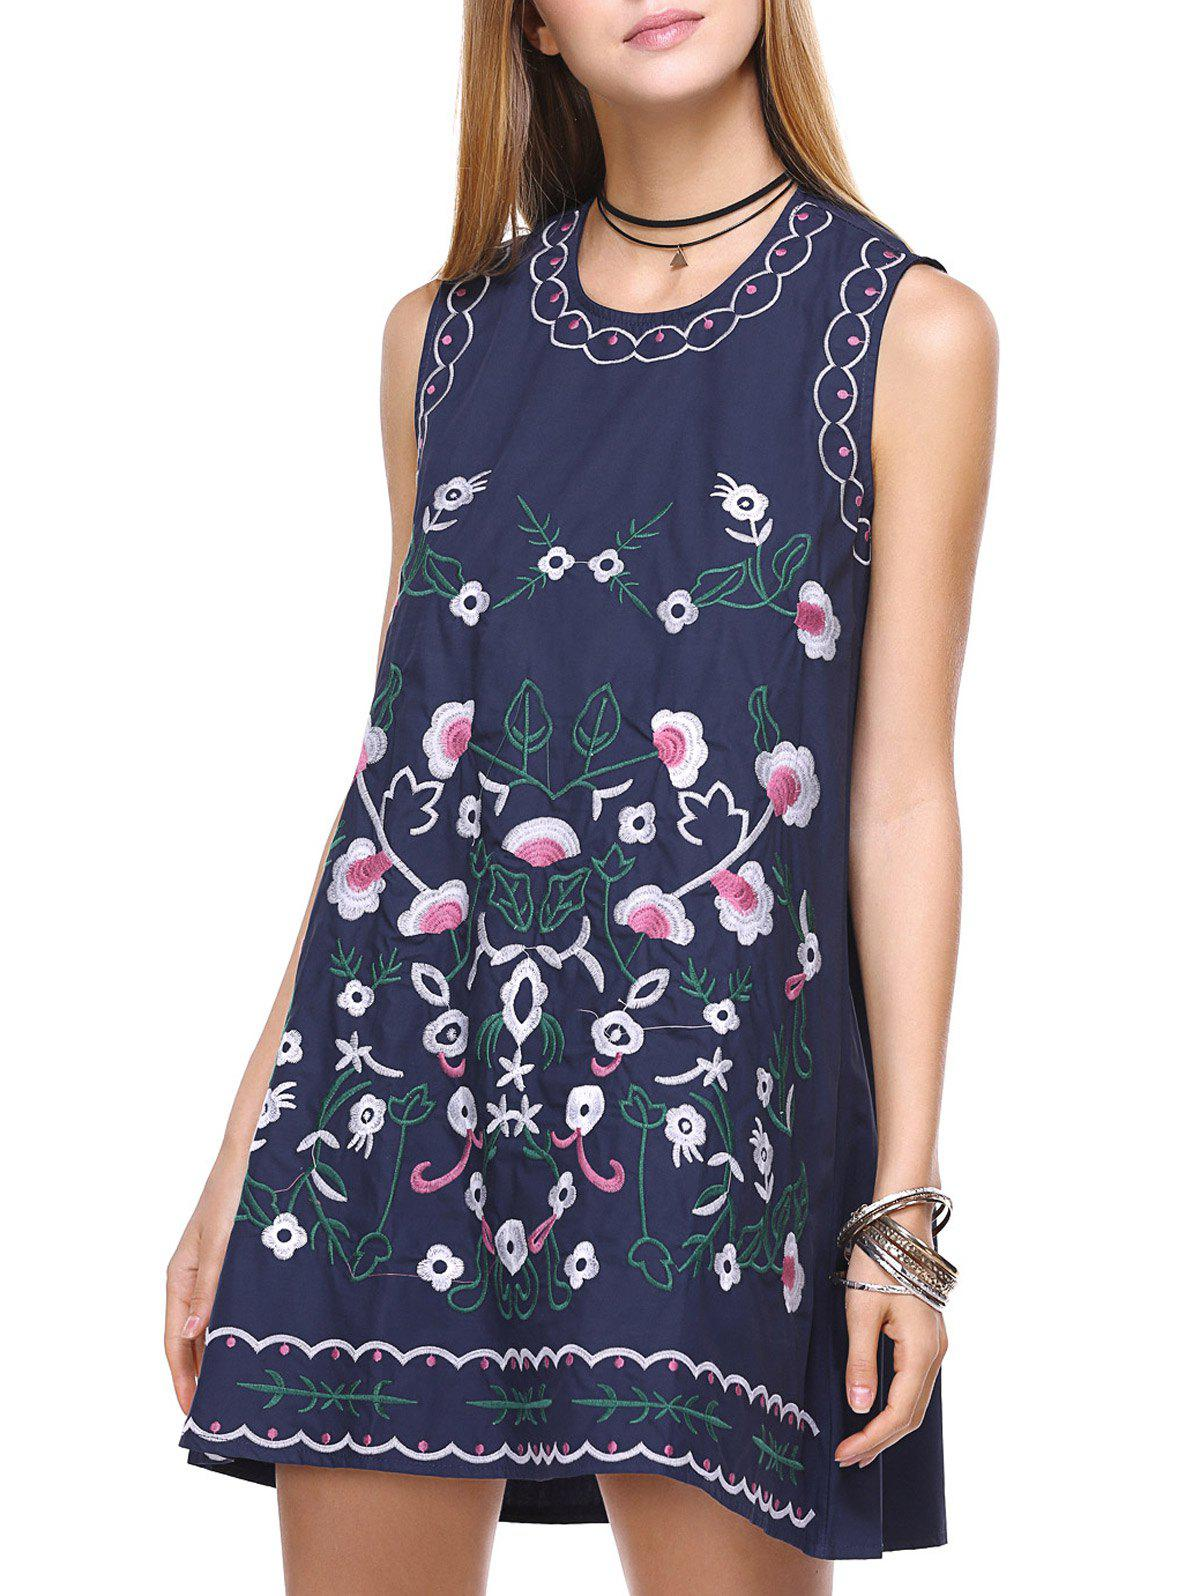 Ethnic Sleeveless Embroidery Dress For Women - PURPLISH BLUE ONE SIZE(FIT SIZE XS TO M)